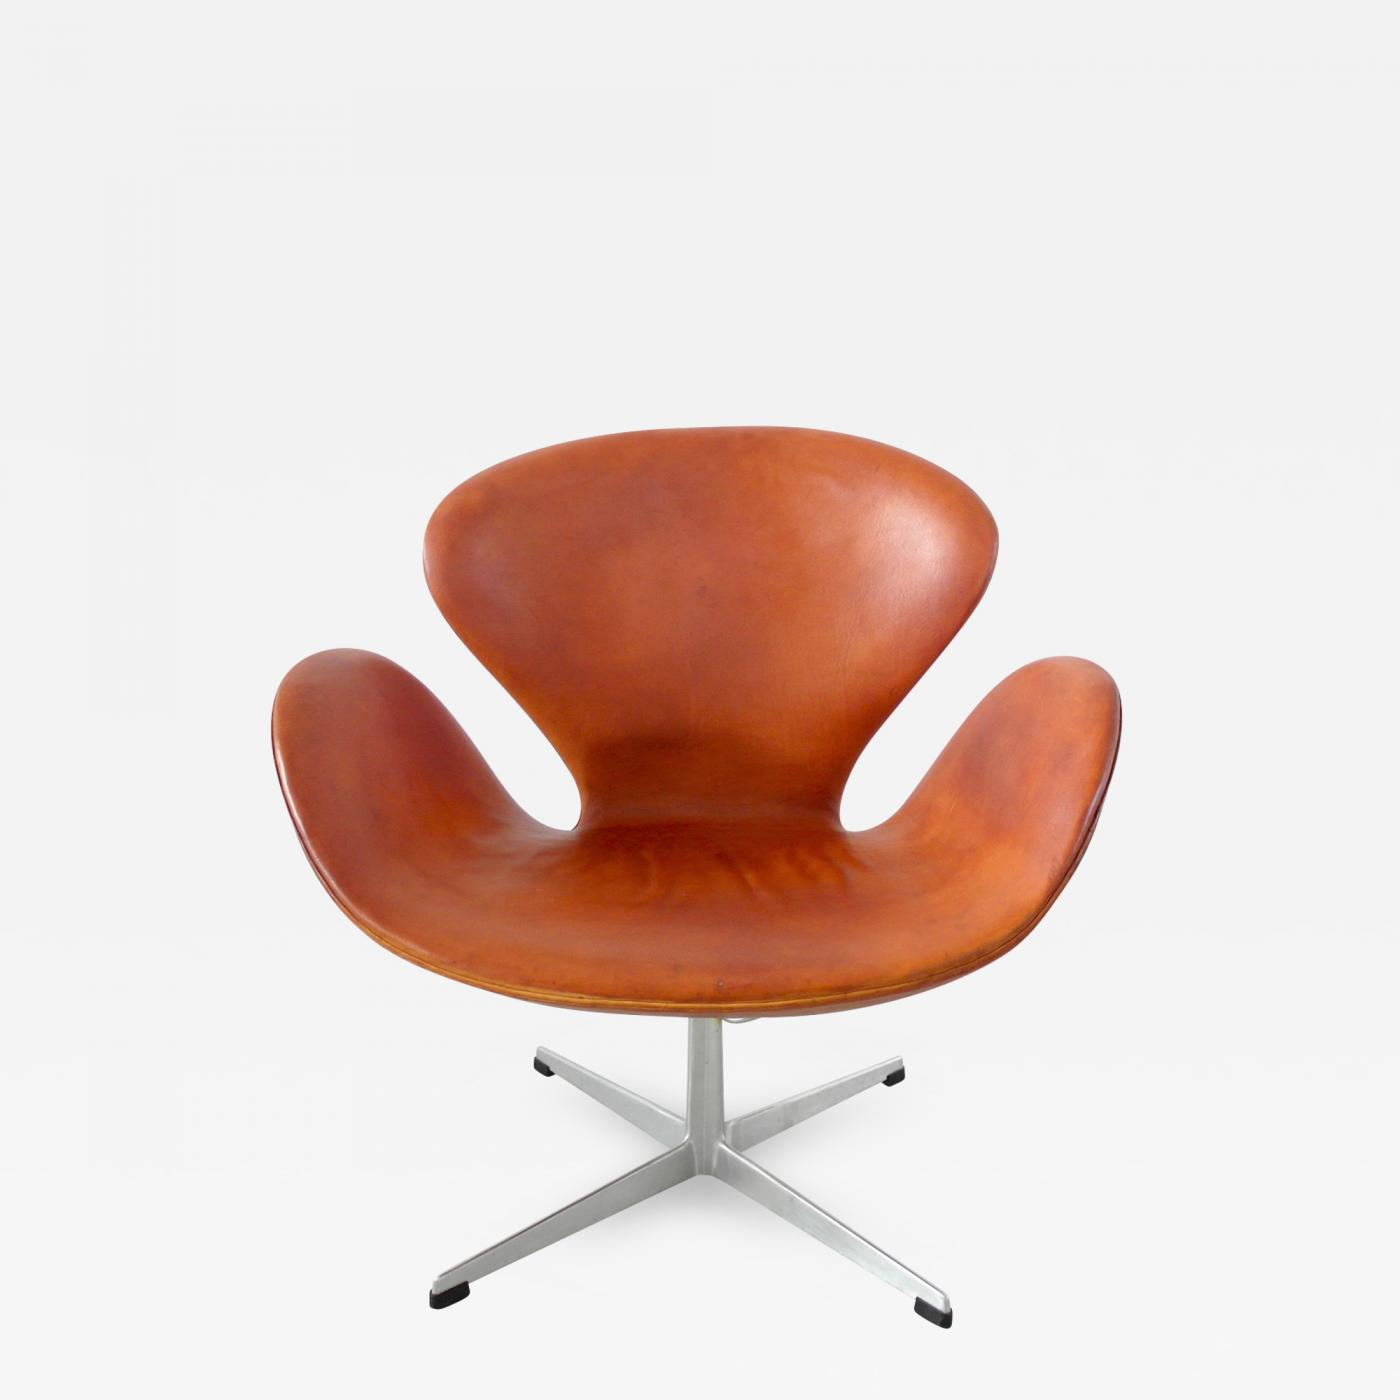 Arne Jacobsen Early Edition Arne Jacobsen Swan Chair In Original